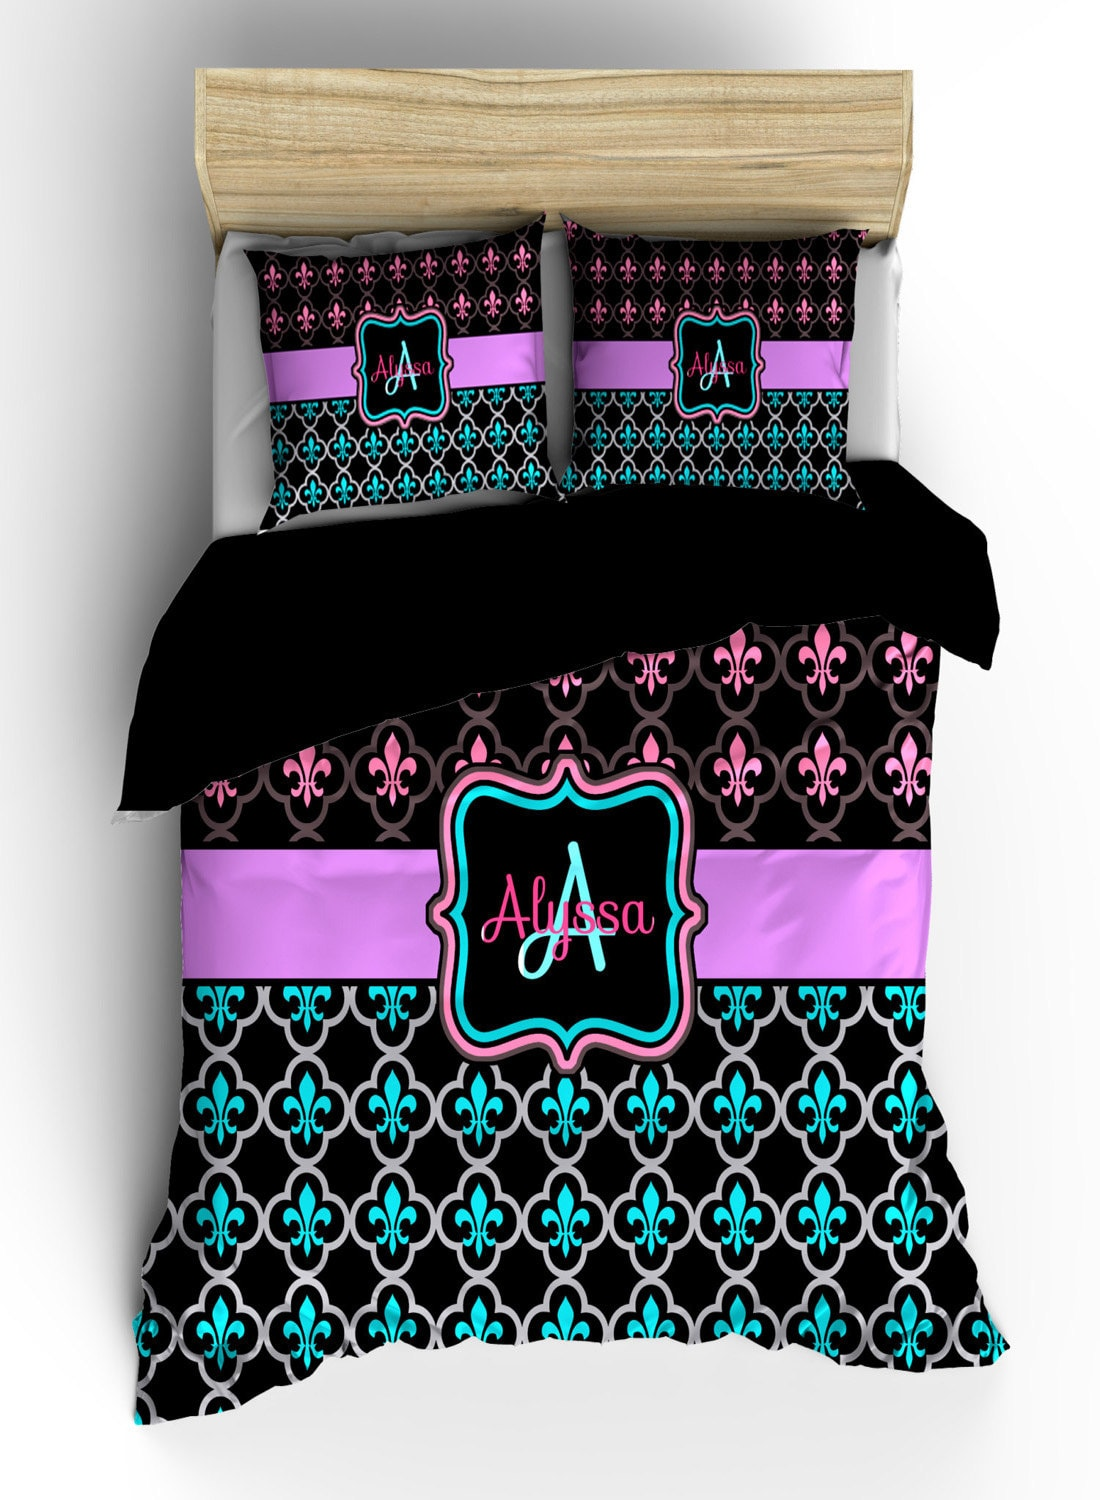 turquoise bedding western de comforter set hhdesigns new country lis rustic piece pin fleur